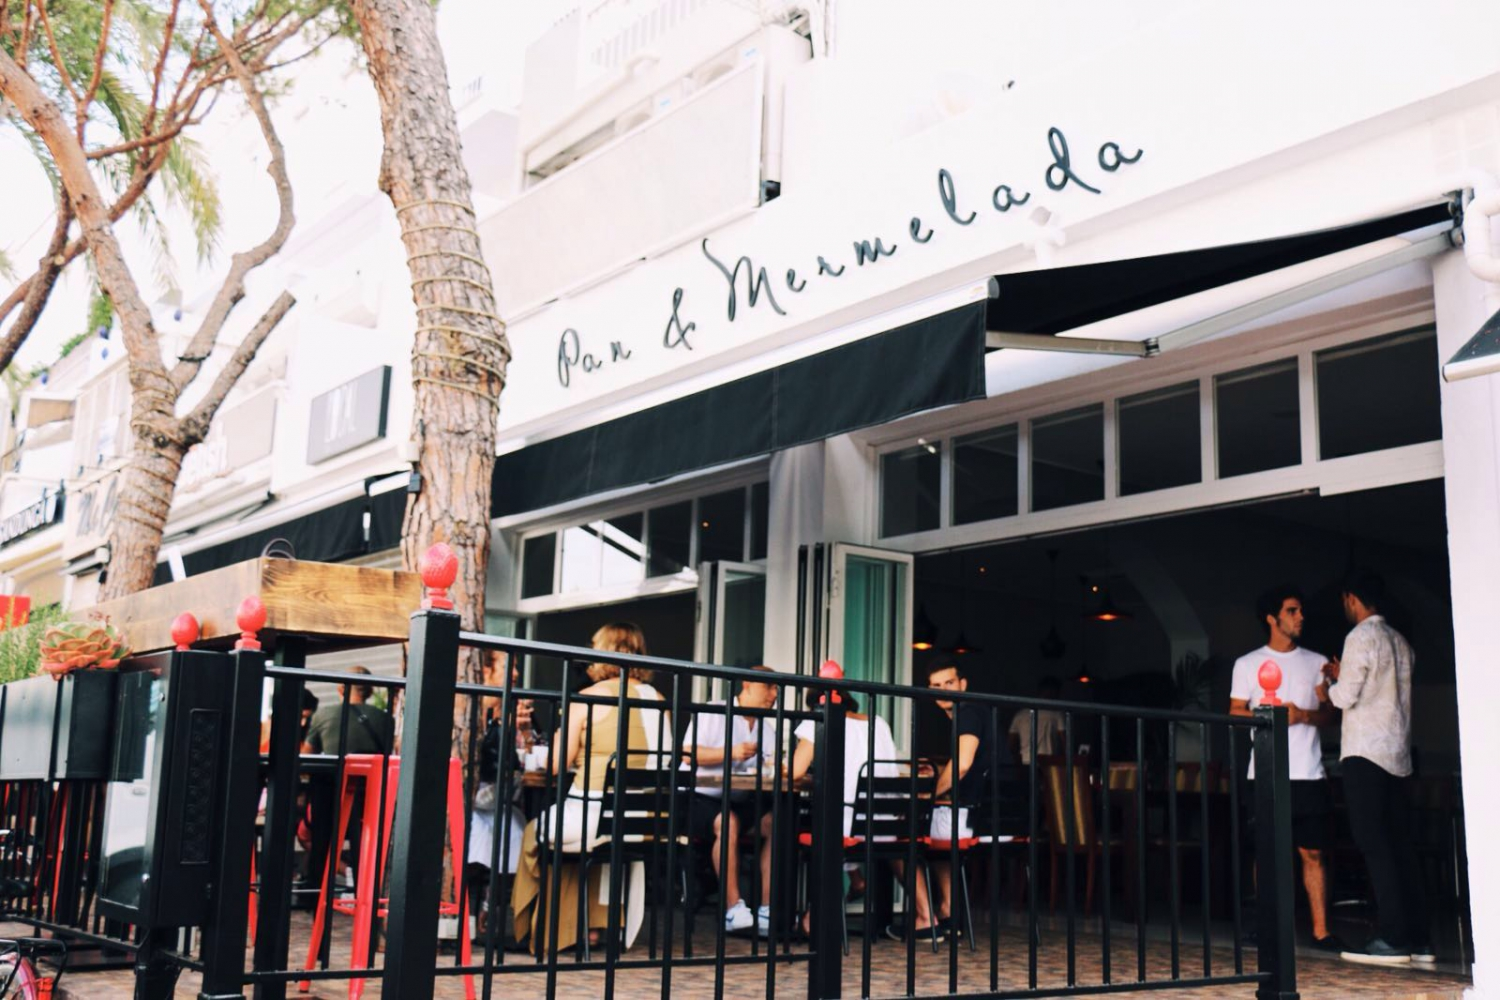 Best tea and biscuits spots in Marbella